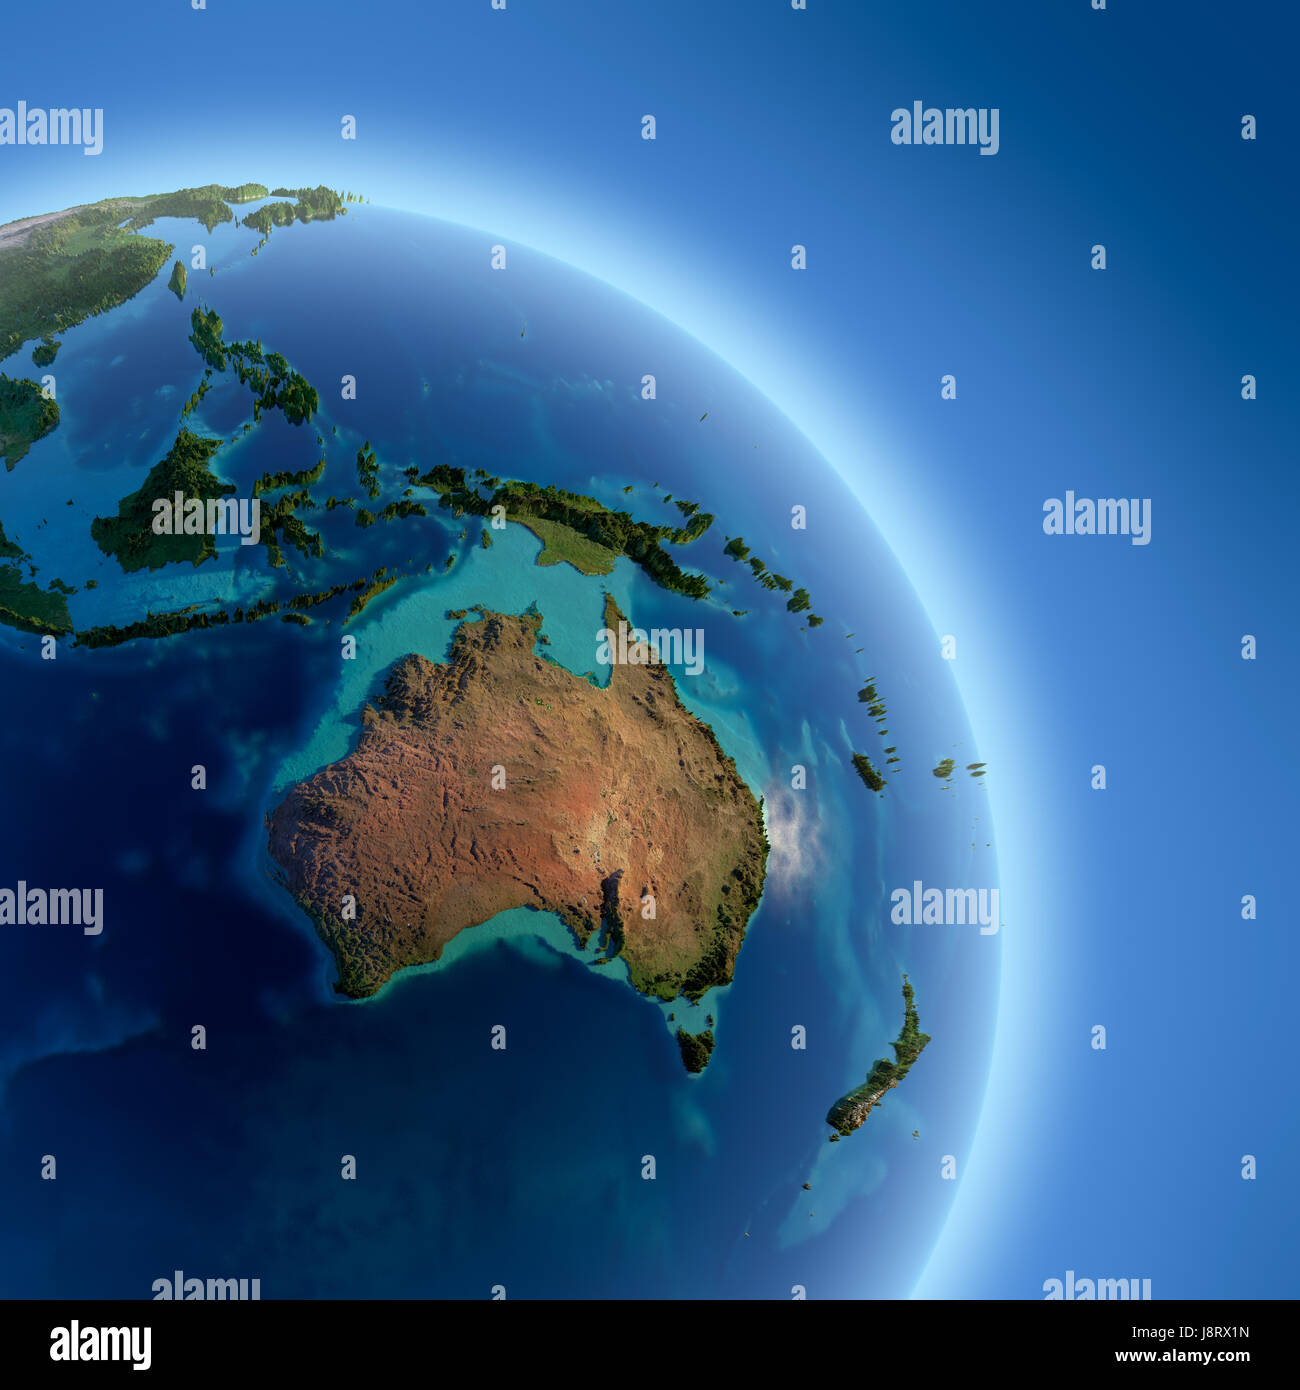 Space sunlight globe planet earth world map atlas map of stock photo space sunlight globe planet earth world map atlas map of the world gumiabroncs Choice Image